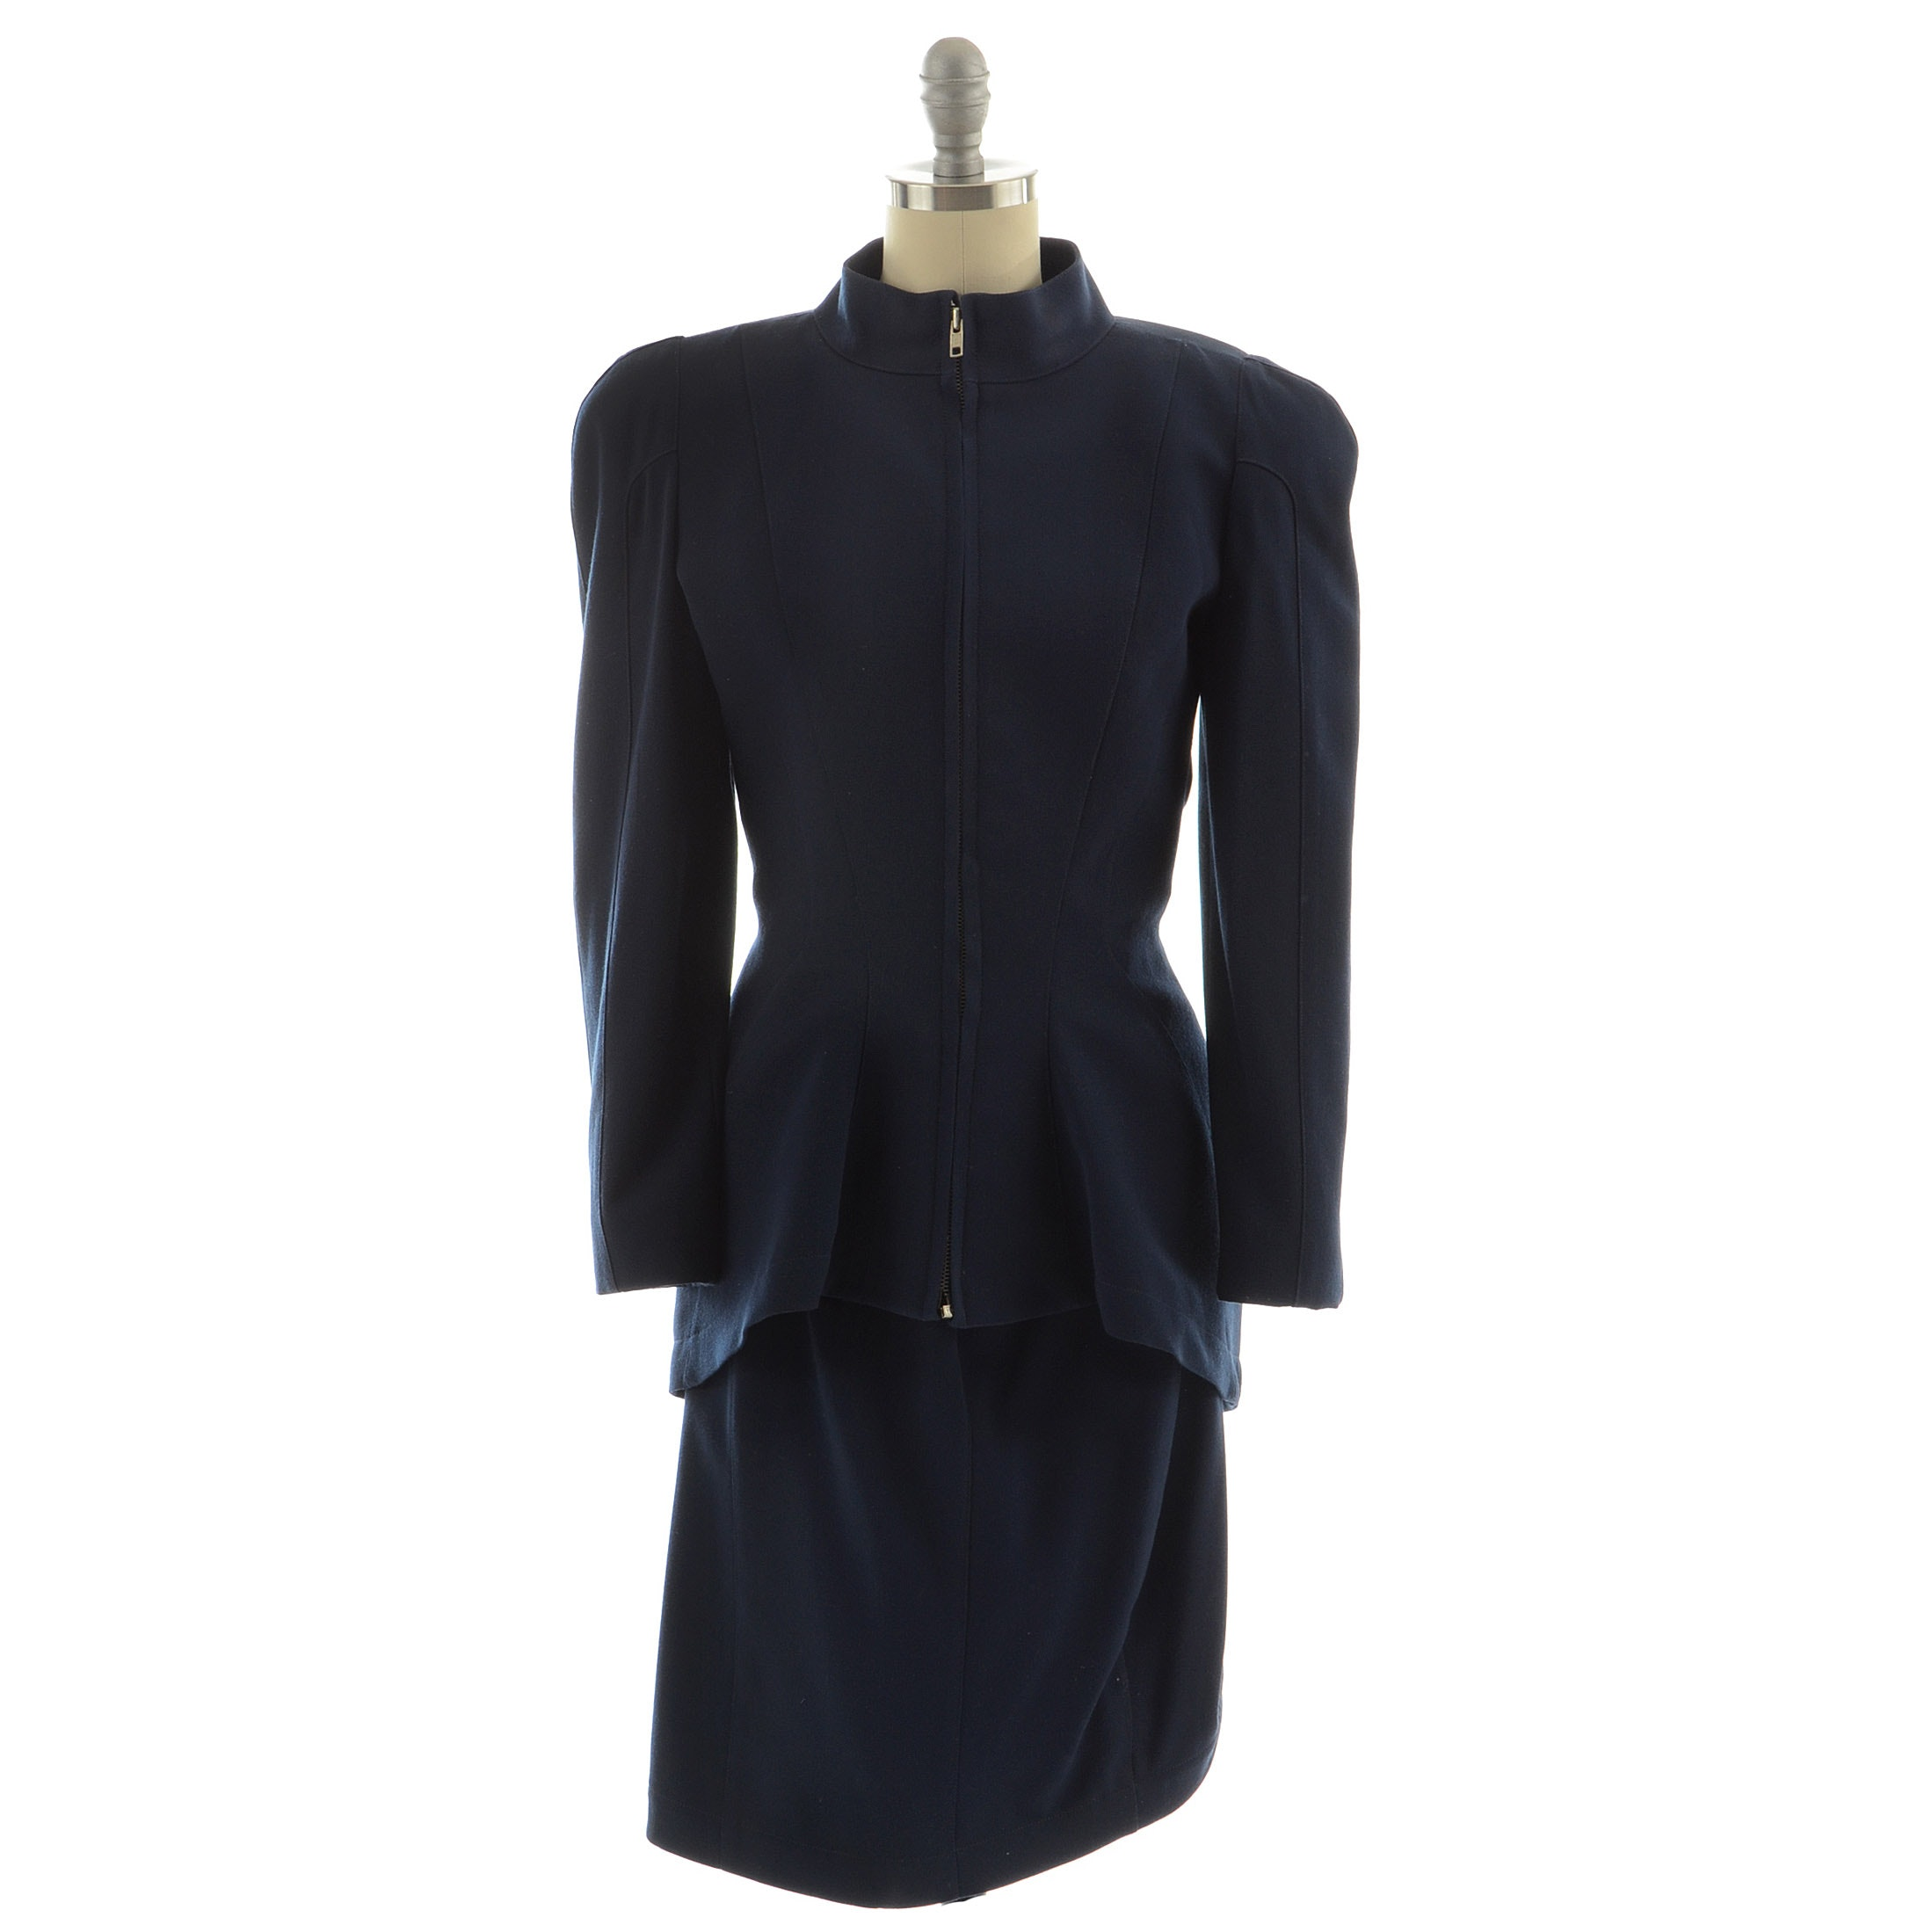 Thierry Mugler of Paris Tailored Zipper Front Jacket and Skirt Set in Navy Blue